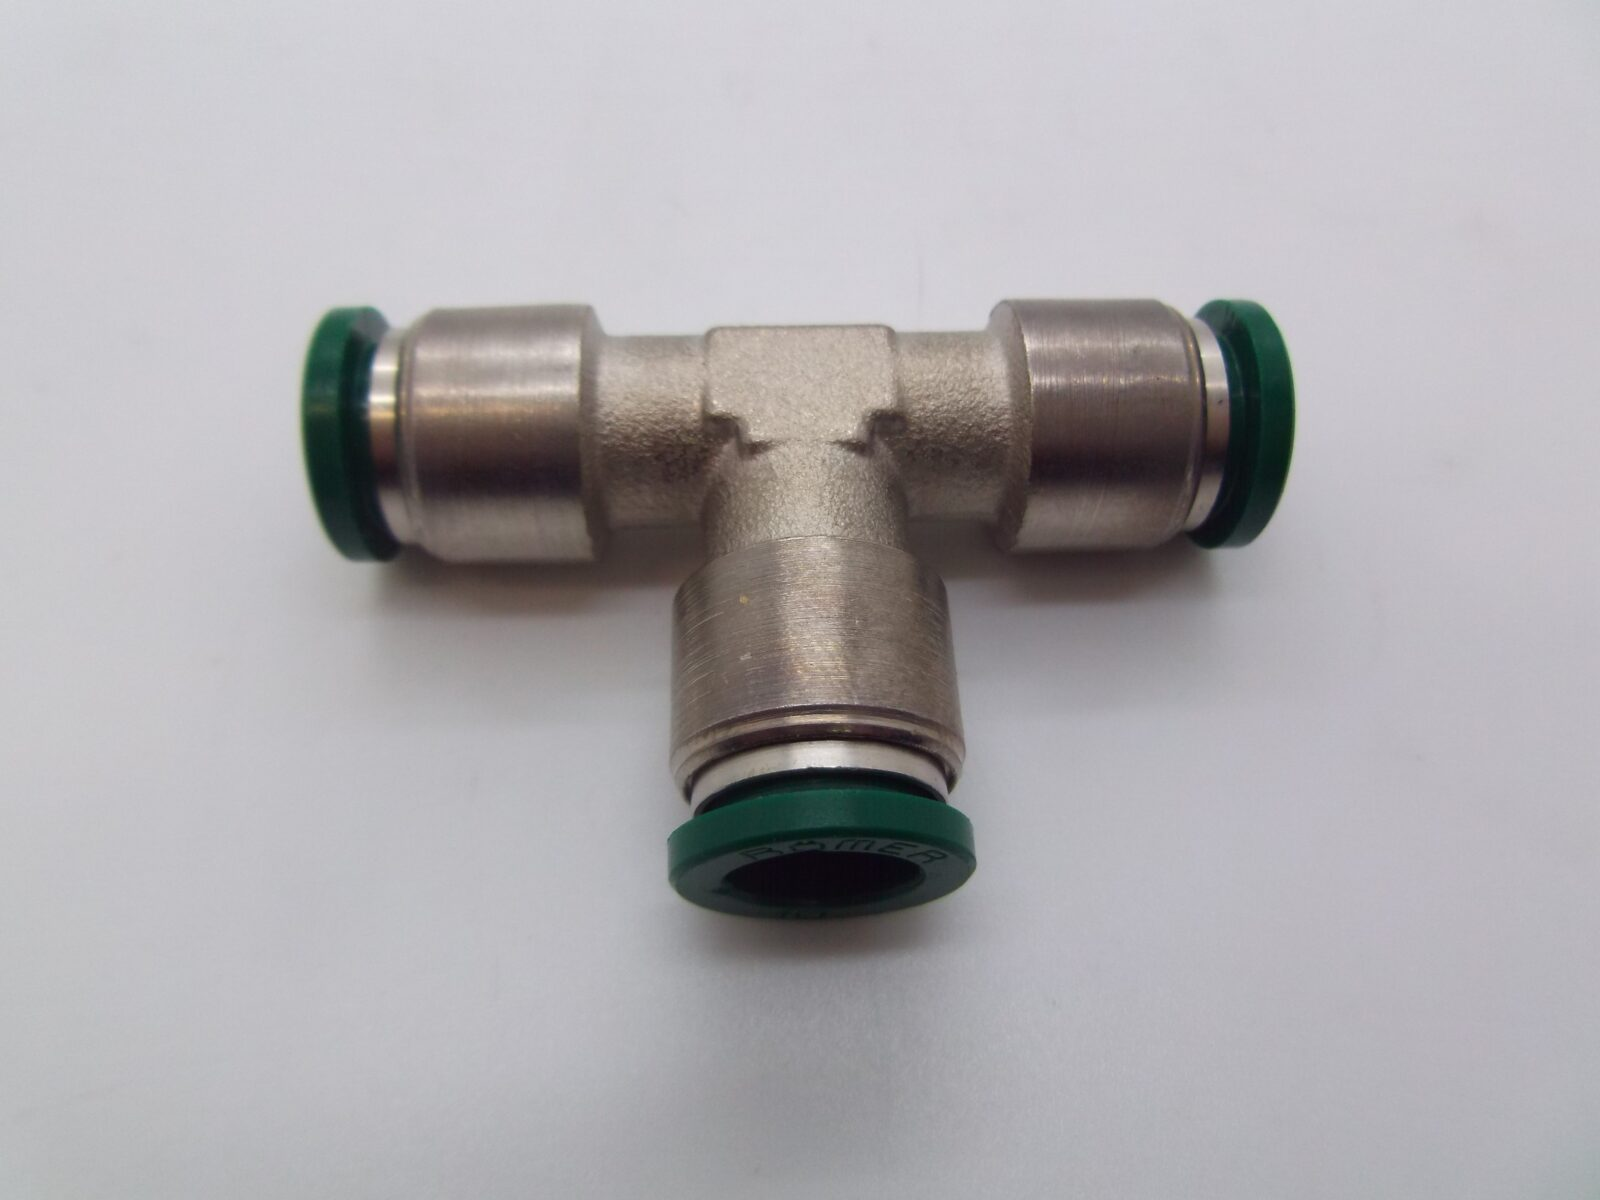 10mm Tee Piece Quick Fit Coupling HDM:00.580.5341